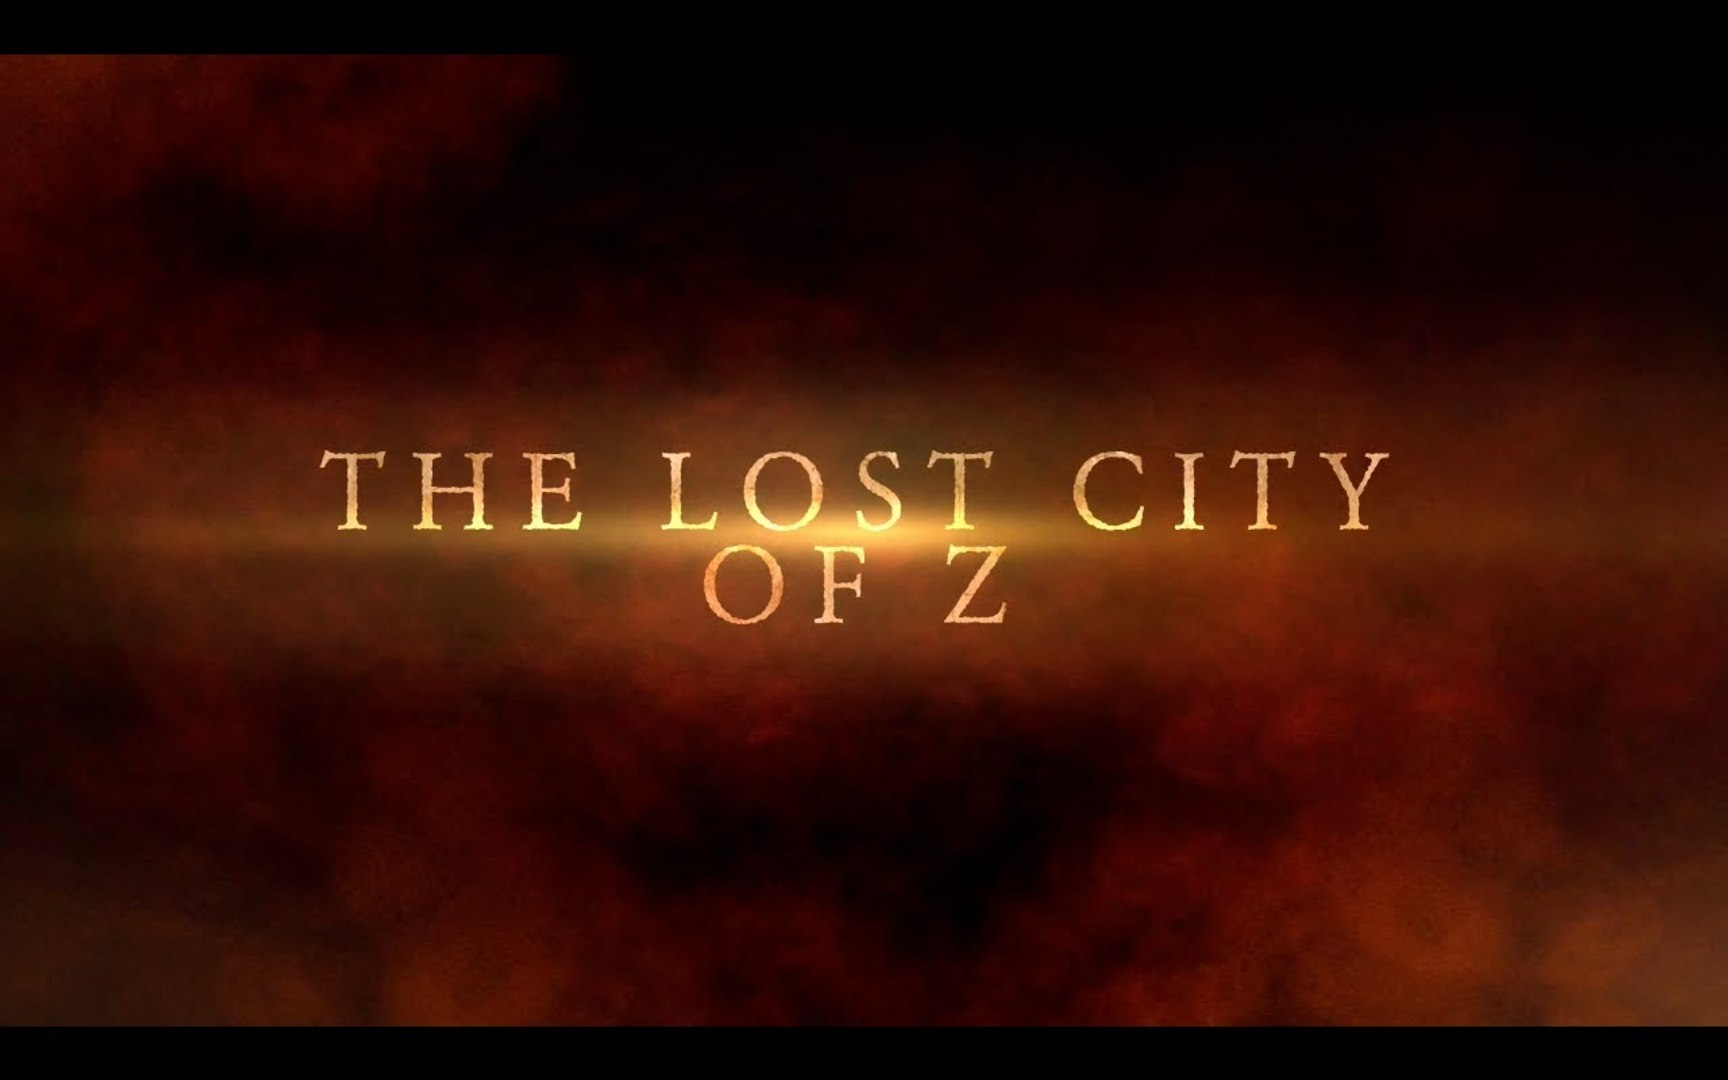 watch The_Lost_City_of_Z (2016) right now here: http://watch-full.com/movie/tt1212428/.html You can